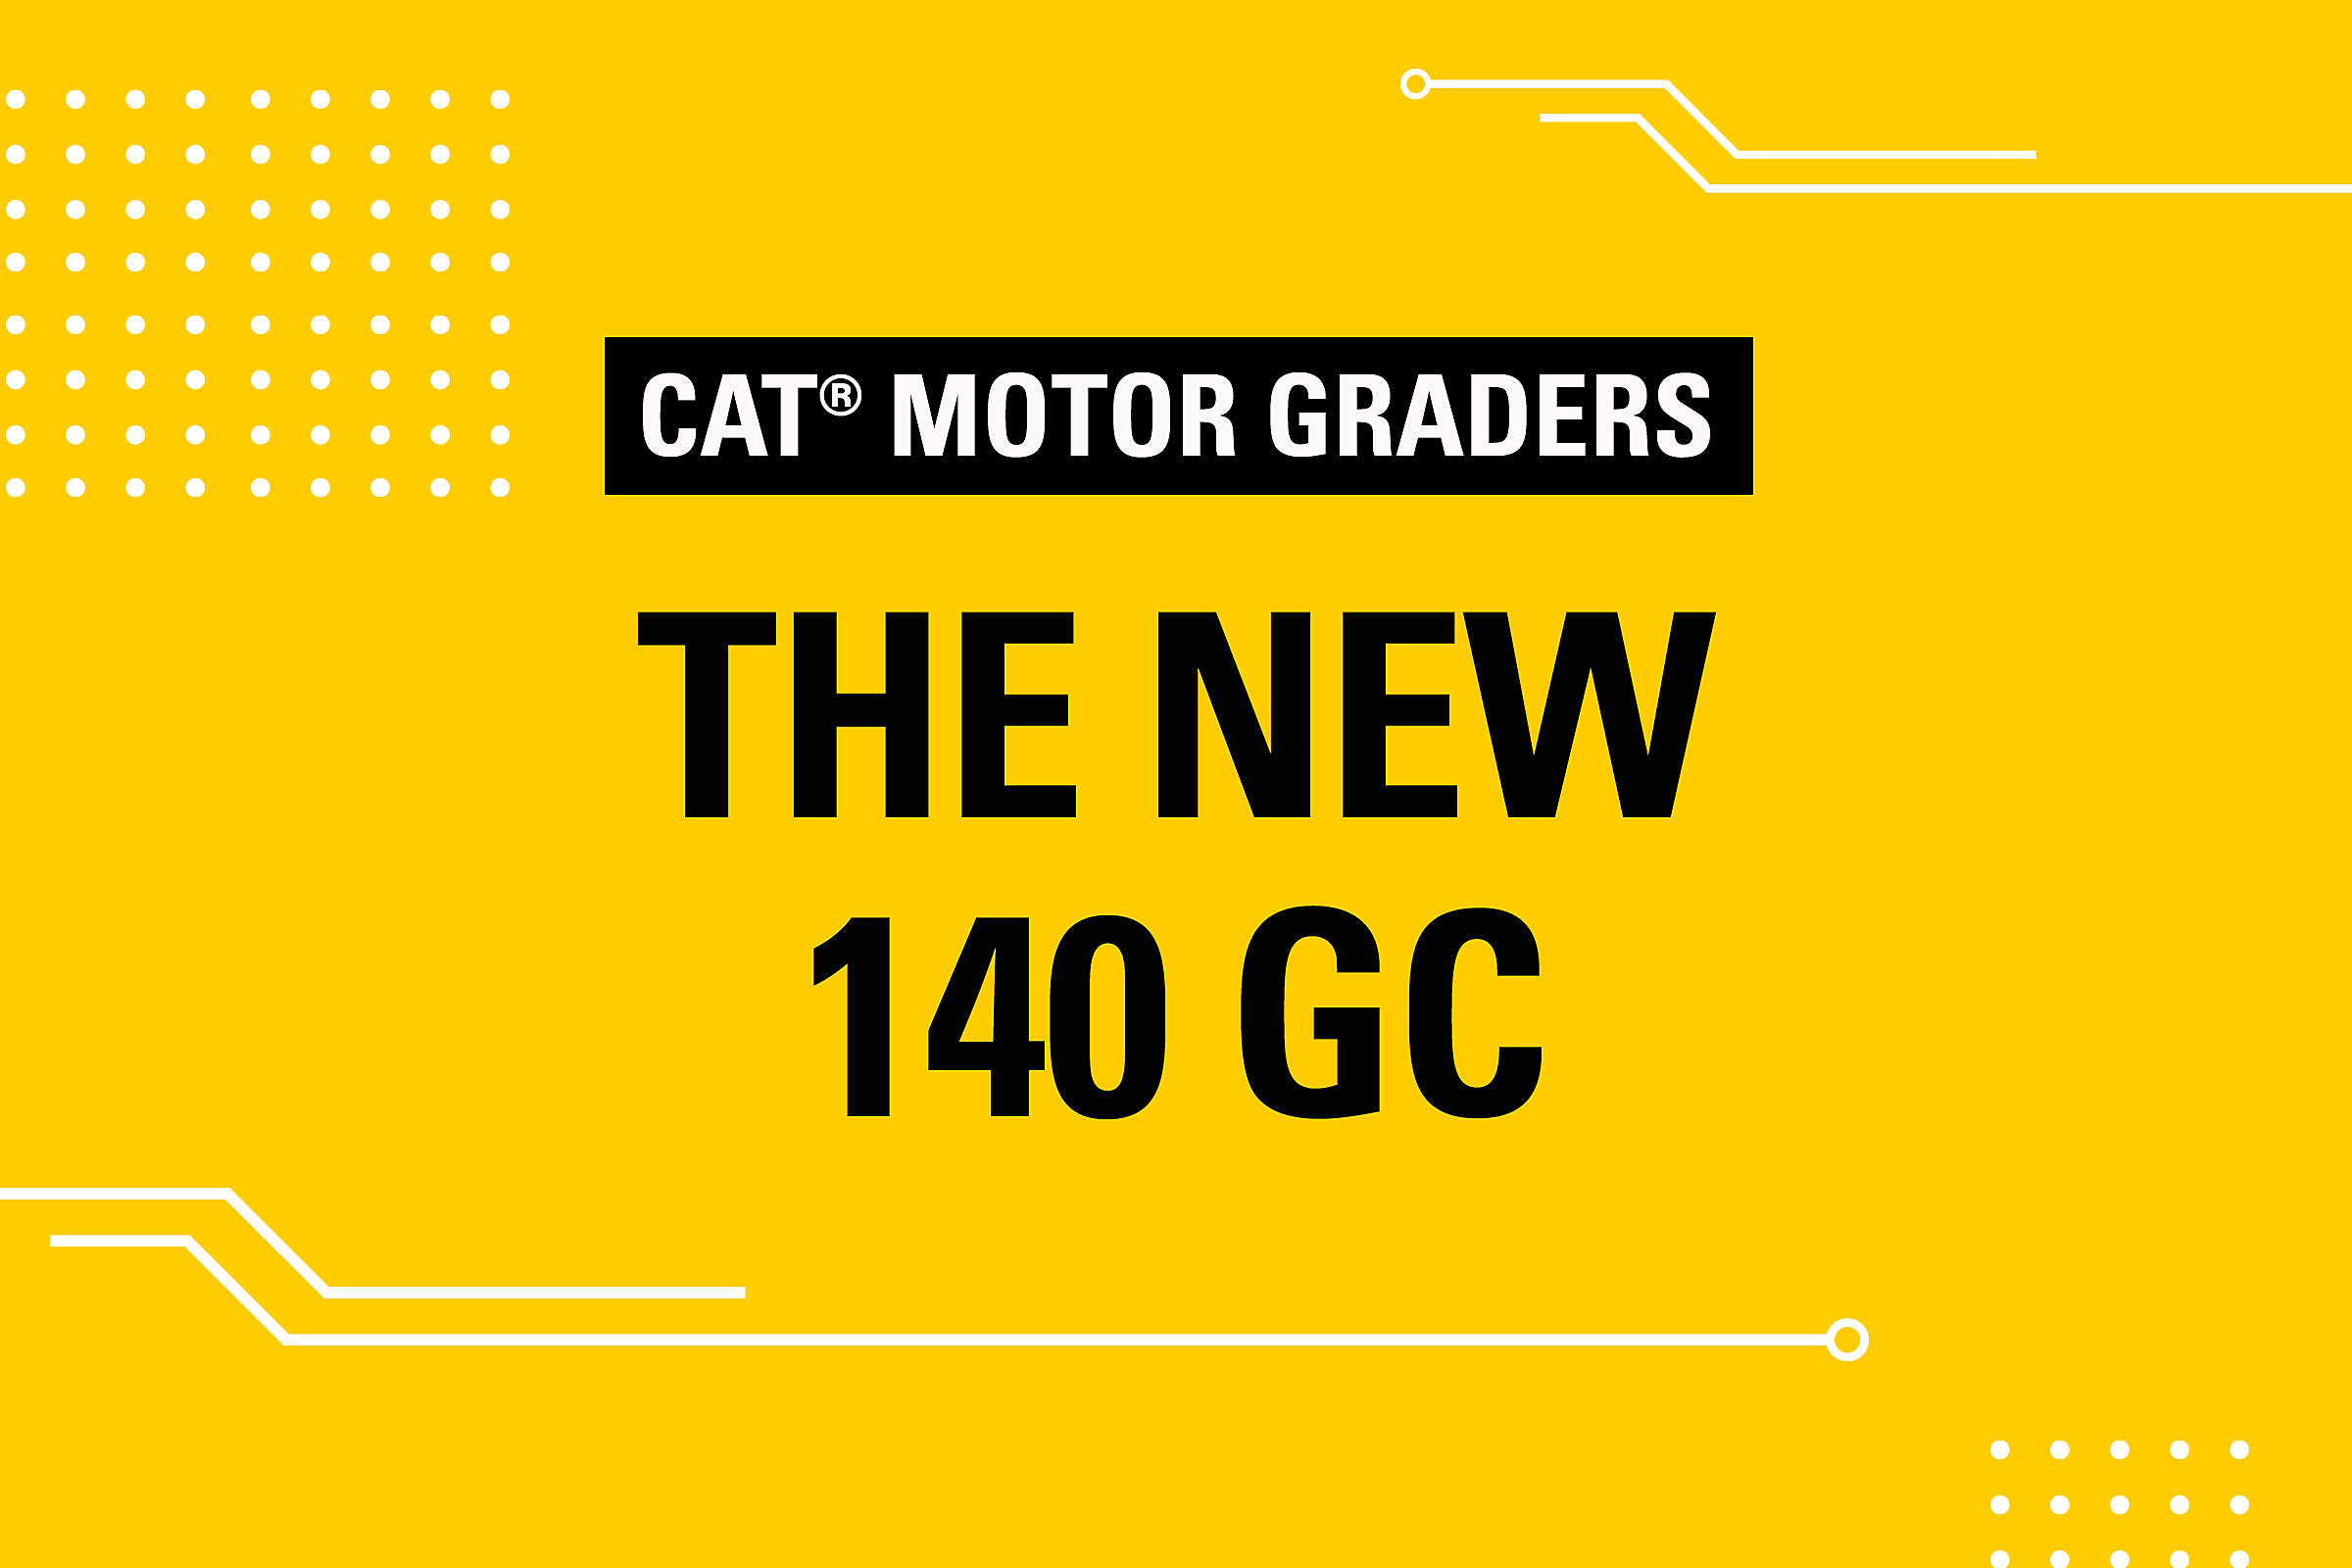 Motor Graders The New 140 GC